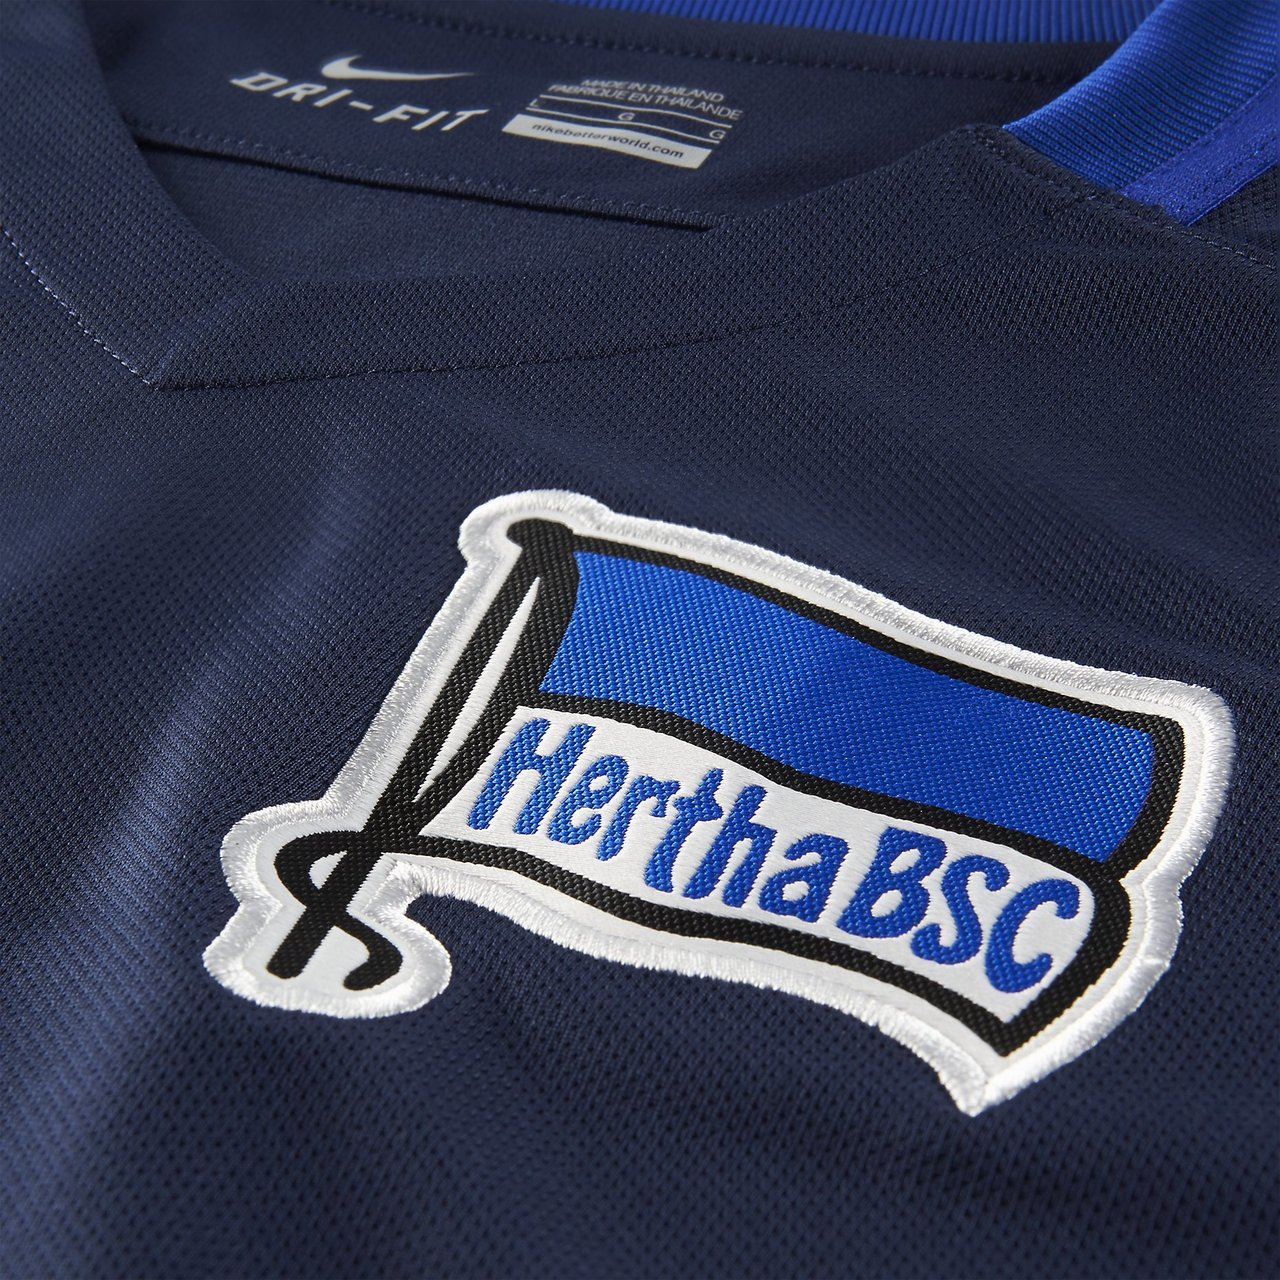 ... Click to enlarge image hertha-bsc-2015-2016-nike-away- ... c7126454d